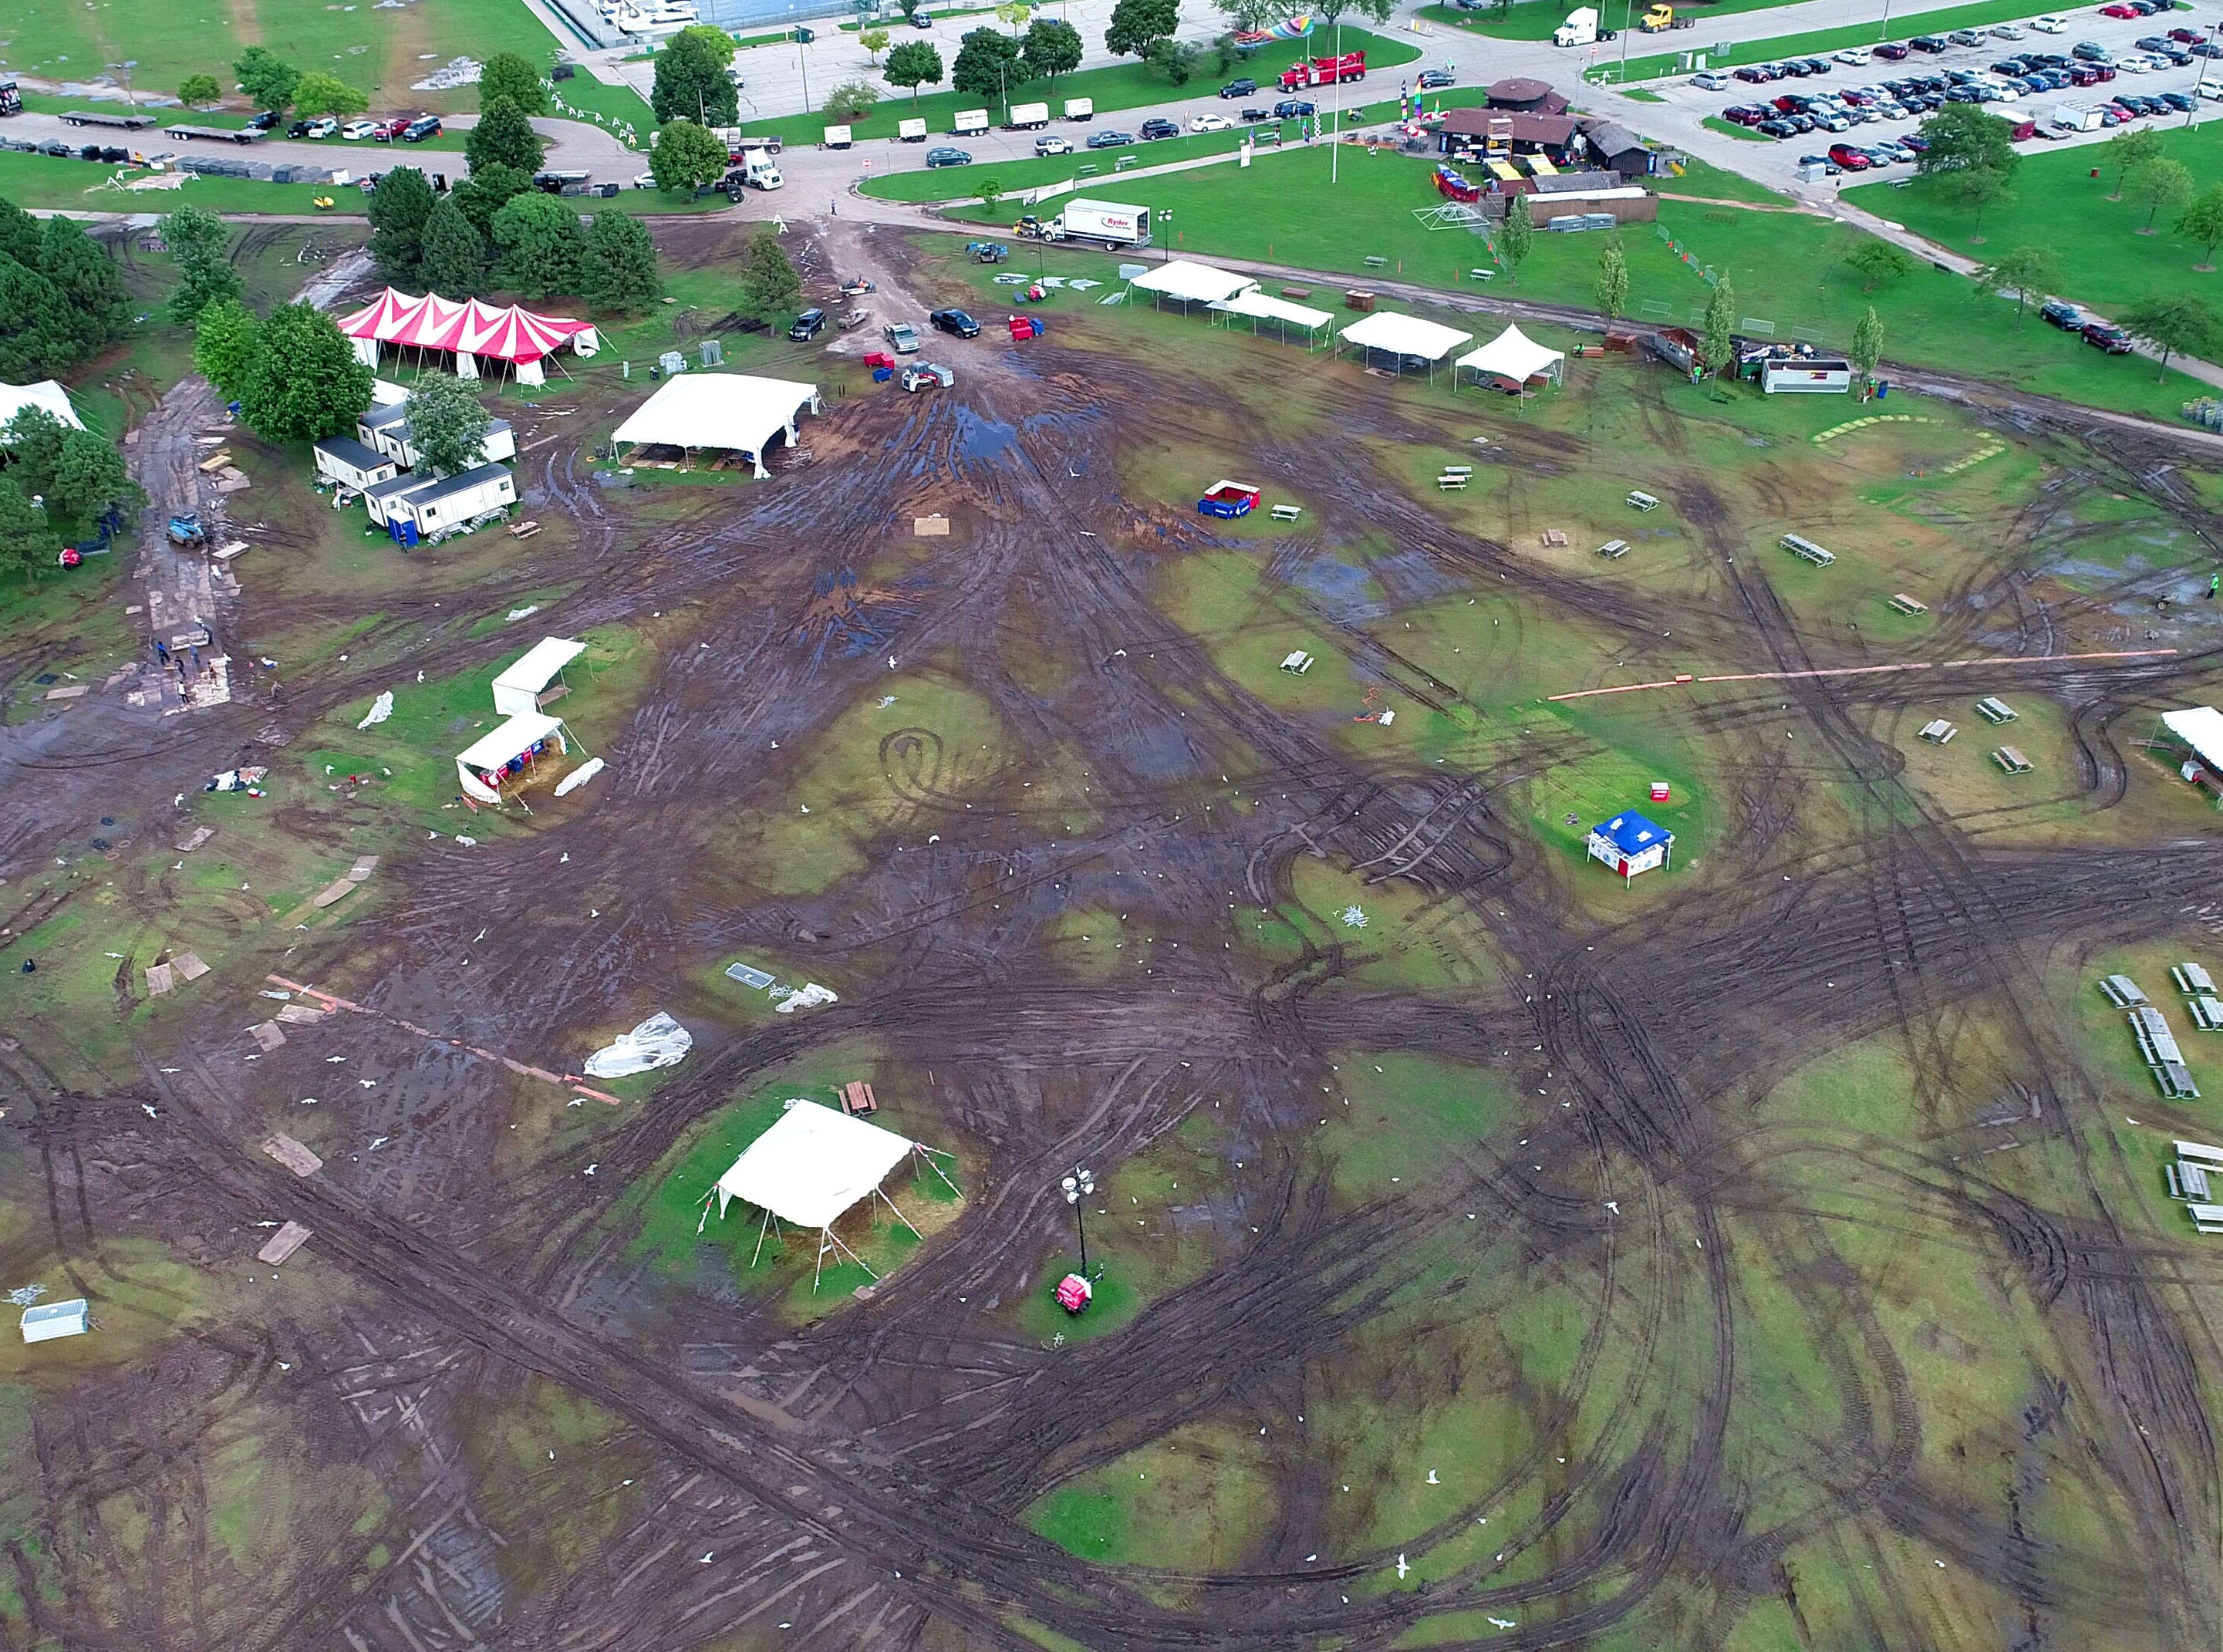 A field of mud and deep ruts can be seen at Veterans Park due to a combination of heavy rain over several days and a flood of party-goers in the city for Harley-Davidson's 115th anniversary celebration.